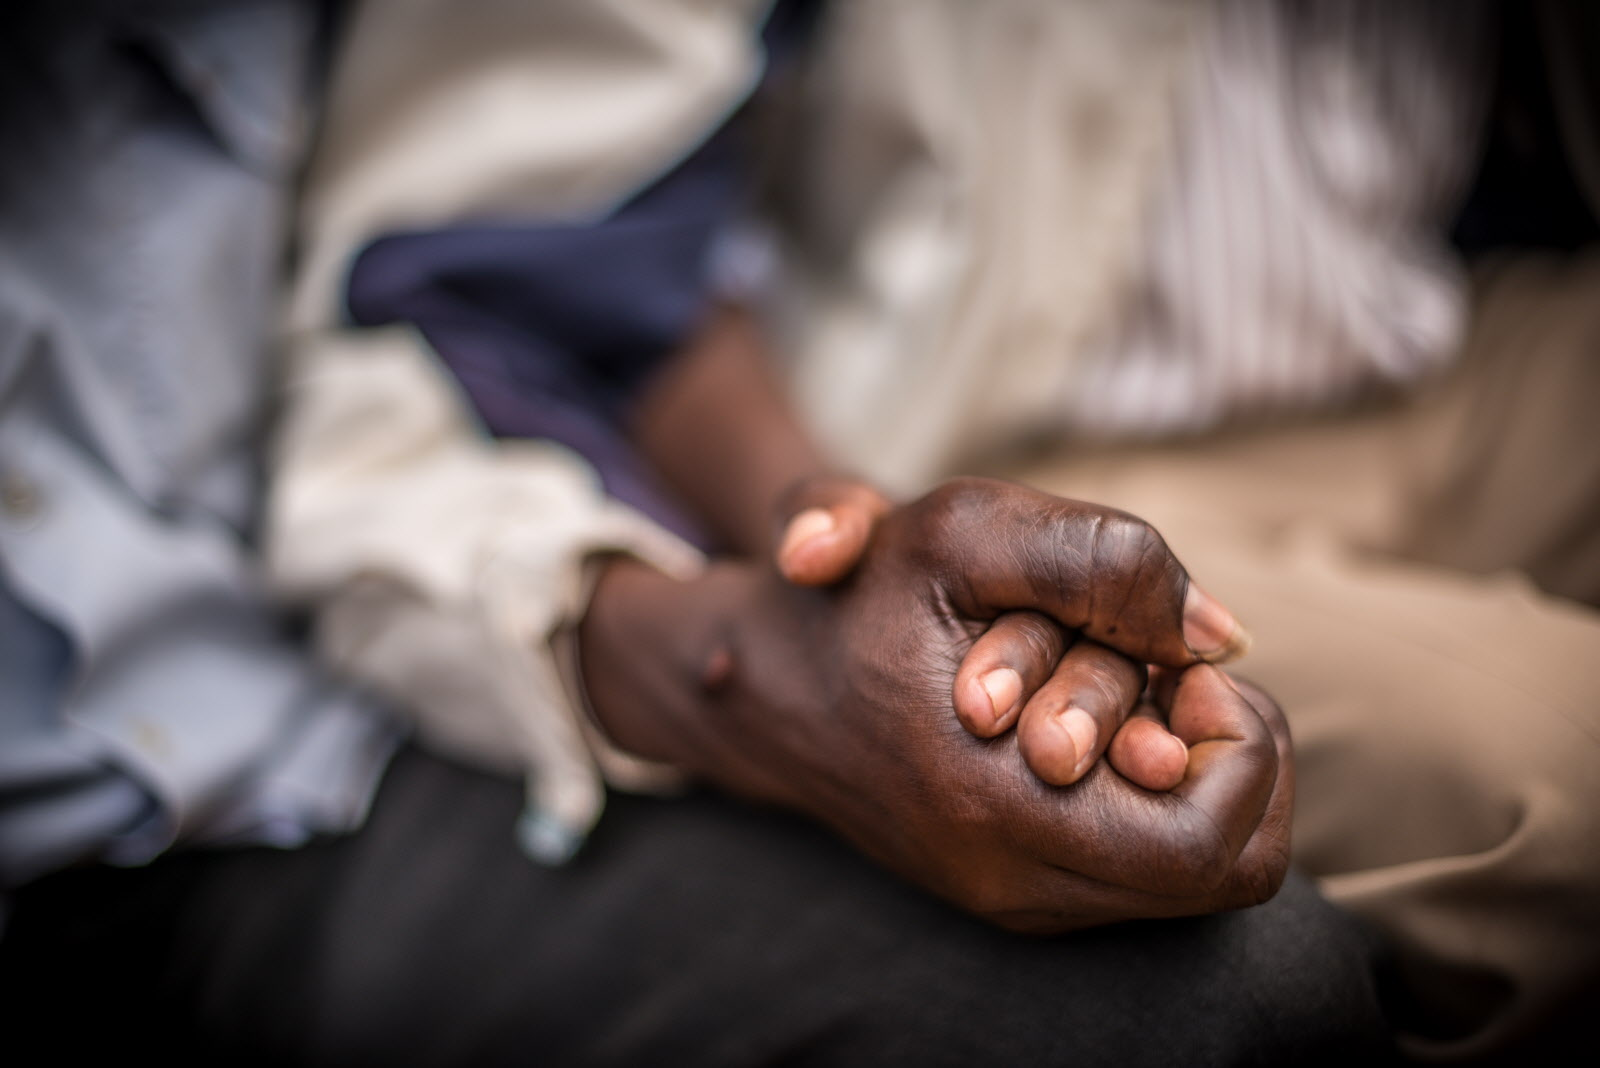 forgive don t forget reconciliation overcomes crises world vision